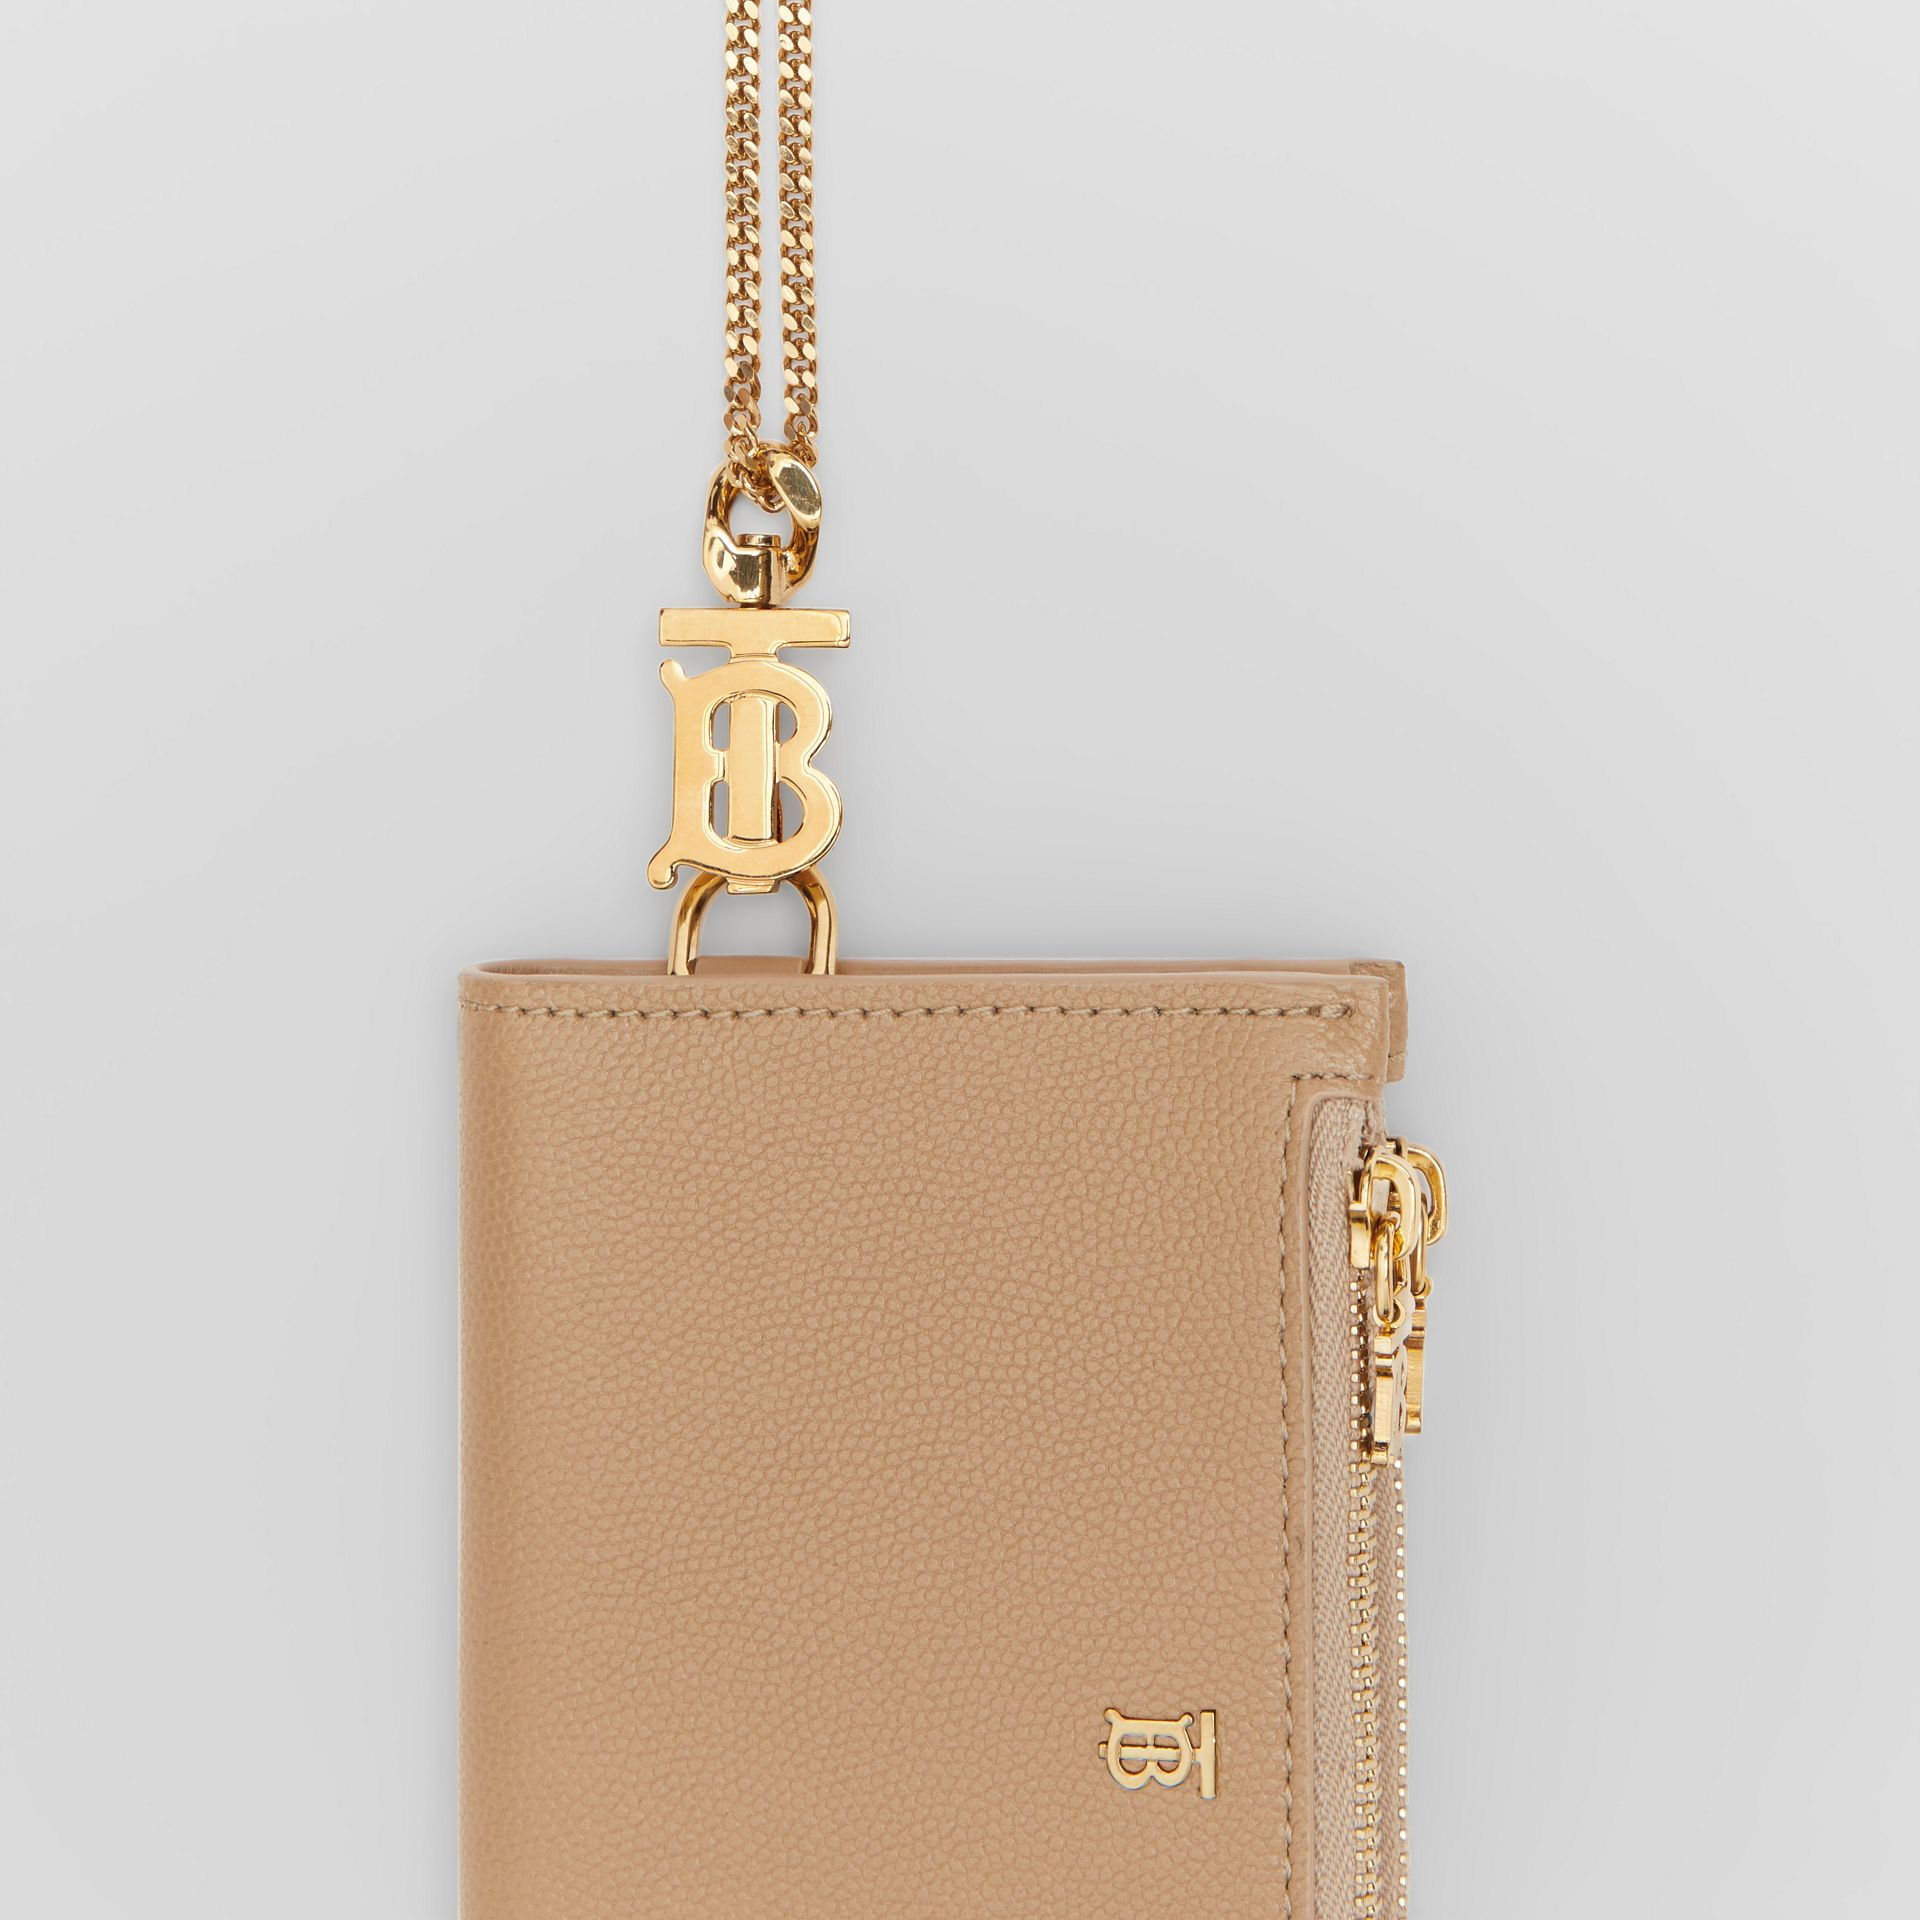 Monogram Motif Grainy Leather Wallet with Detachable Strap in Archive Beige - Women | Burberry Canada - gallery image 1